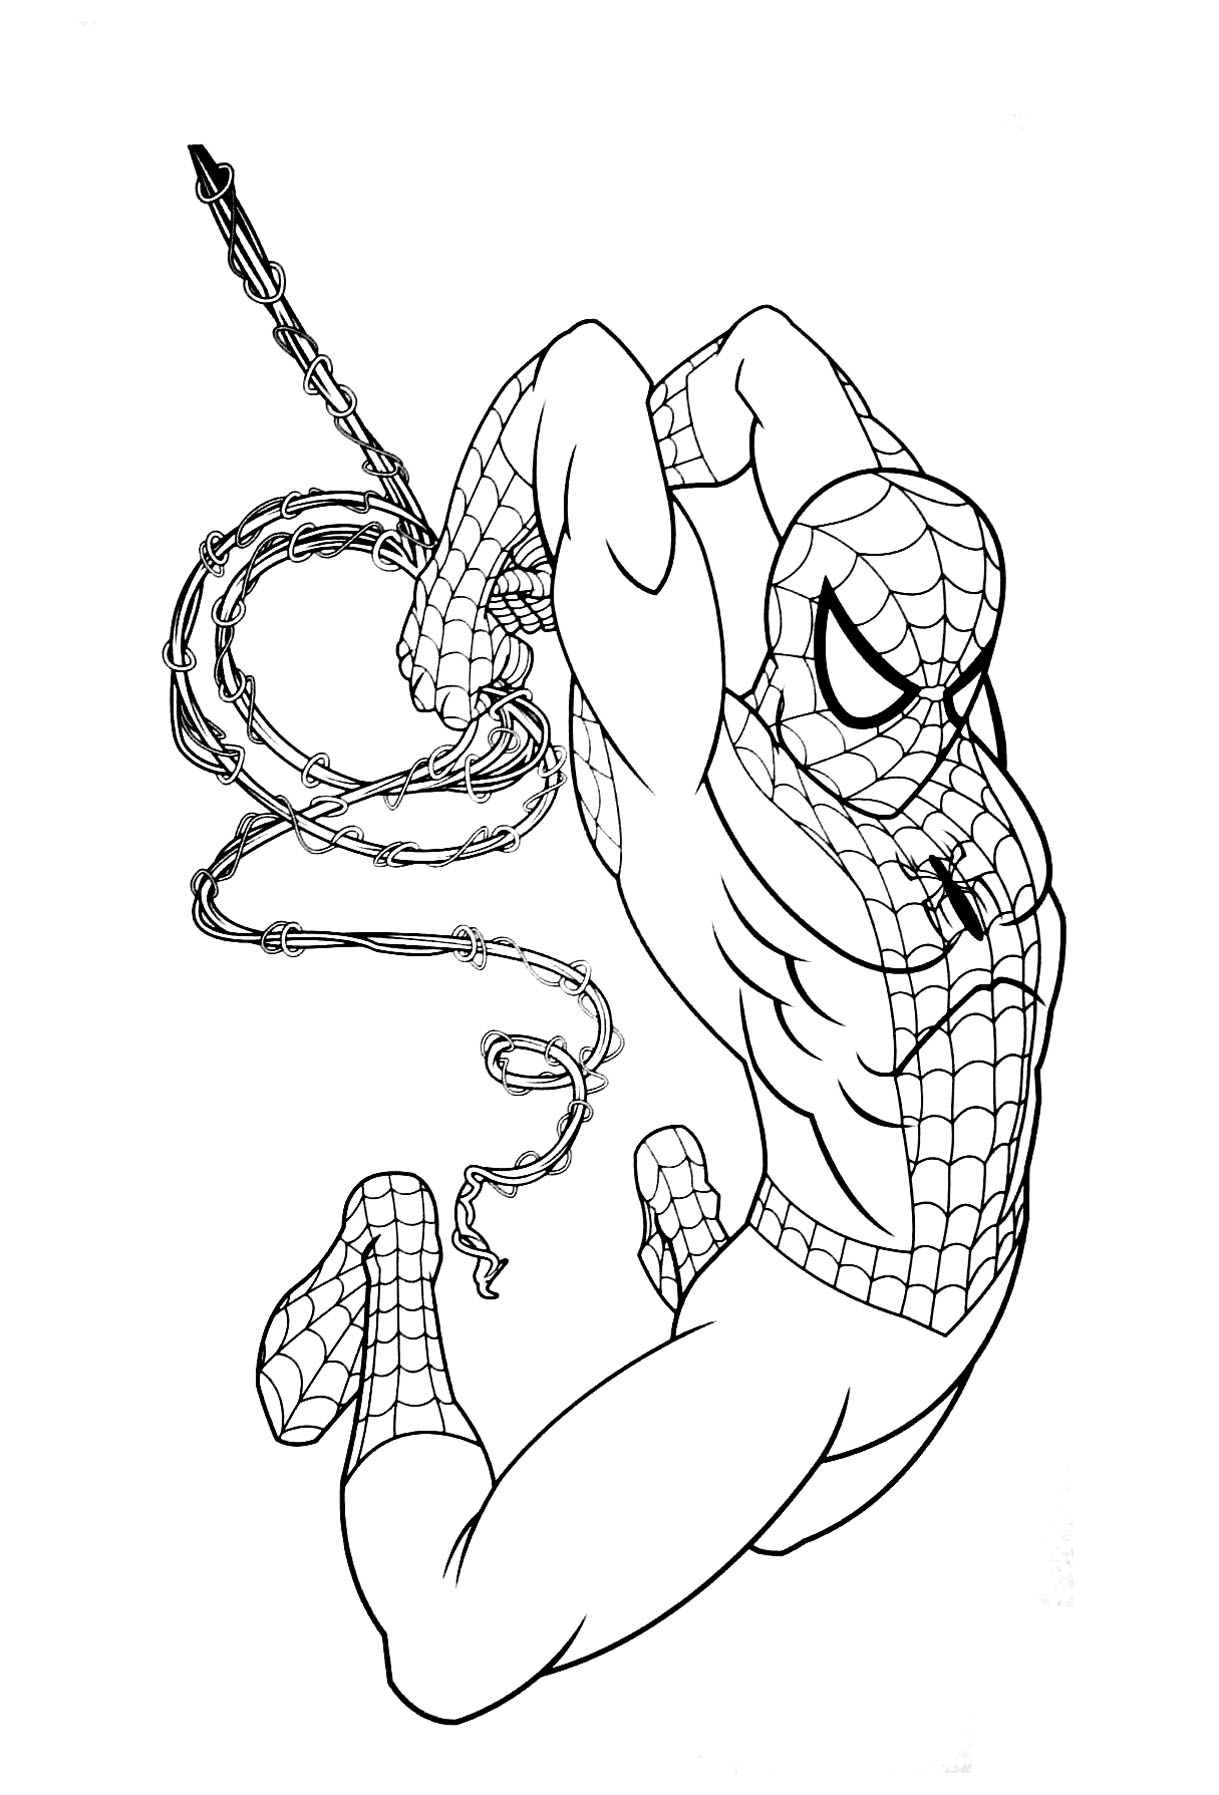 coloring spiderman color spiderman coloring pages download free coloring sheets color spiderman coloring